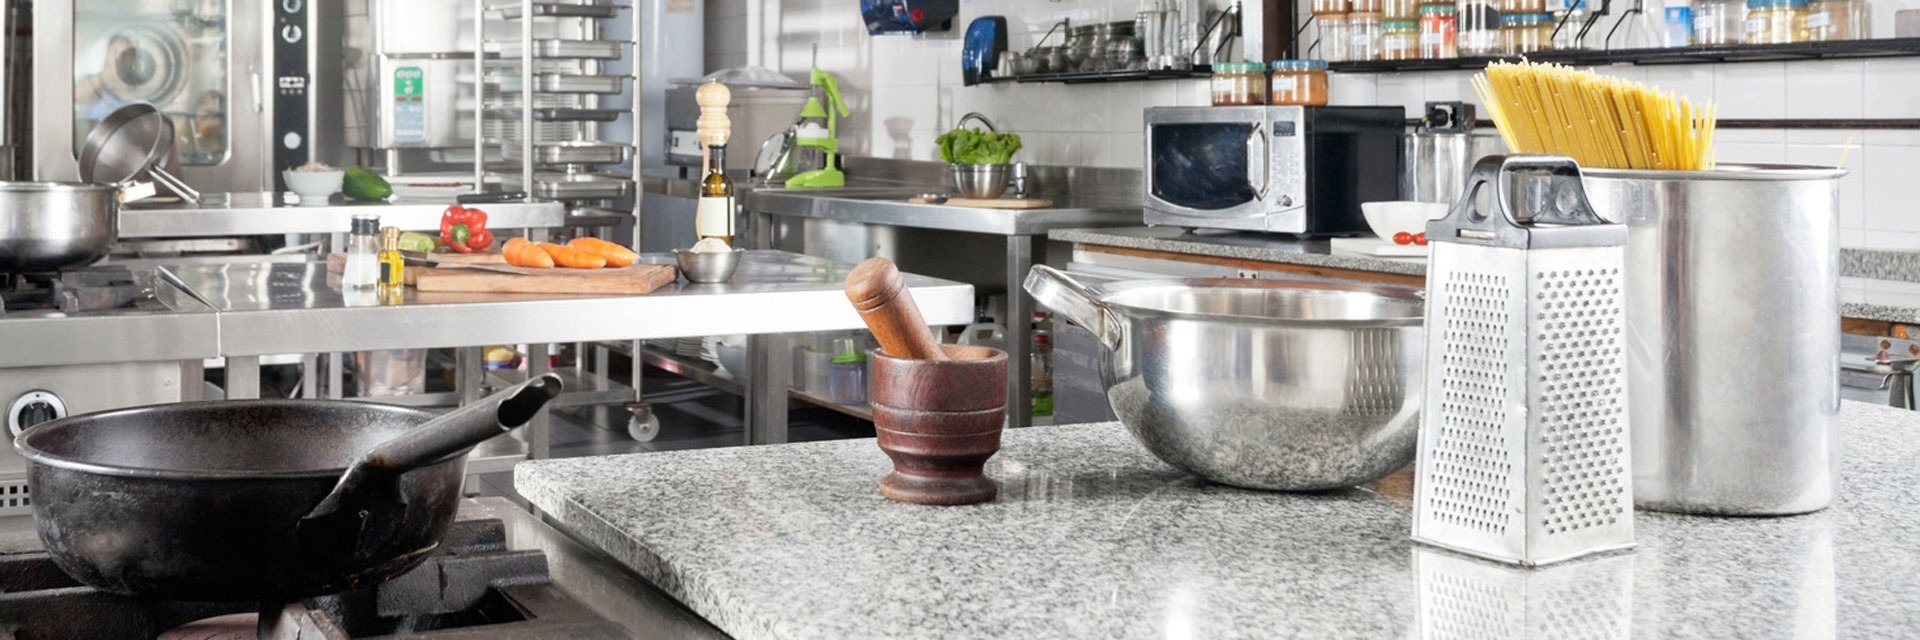 Commercial Kitchen Company & IT Support